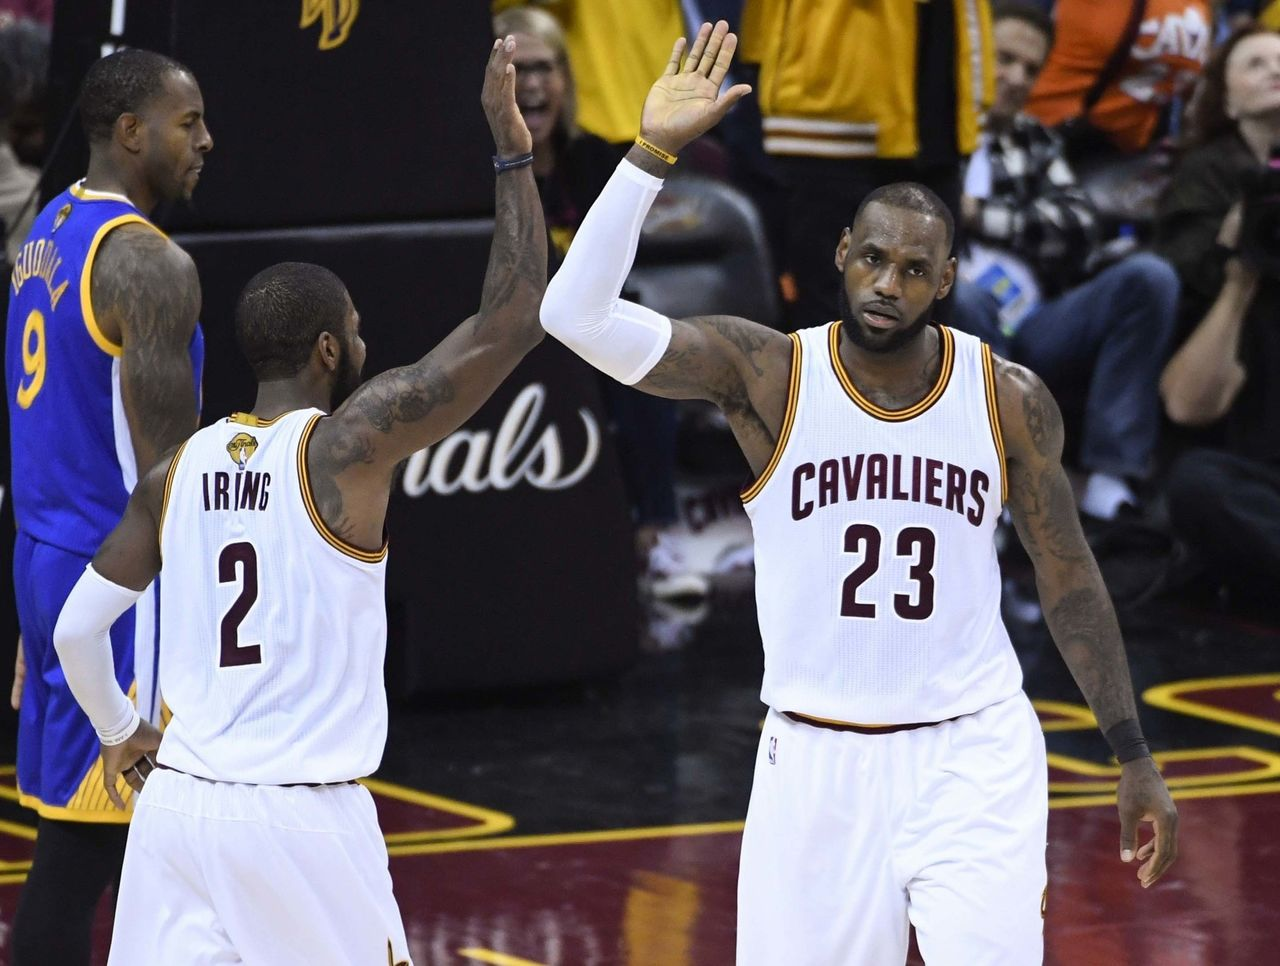 Cropped 2017 06 08t032606z 99637134 nocid rtrmadp 3 nba finals golden state warriors at cleveland cavaliers